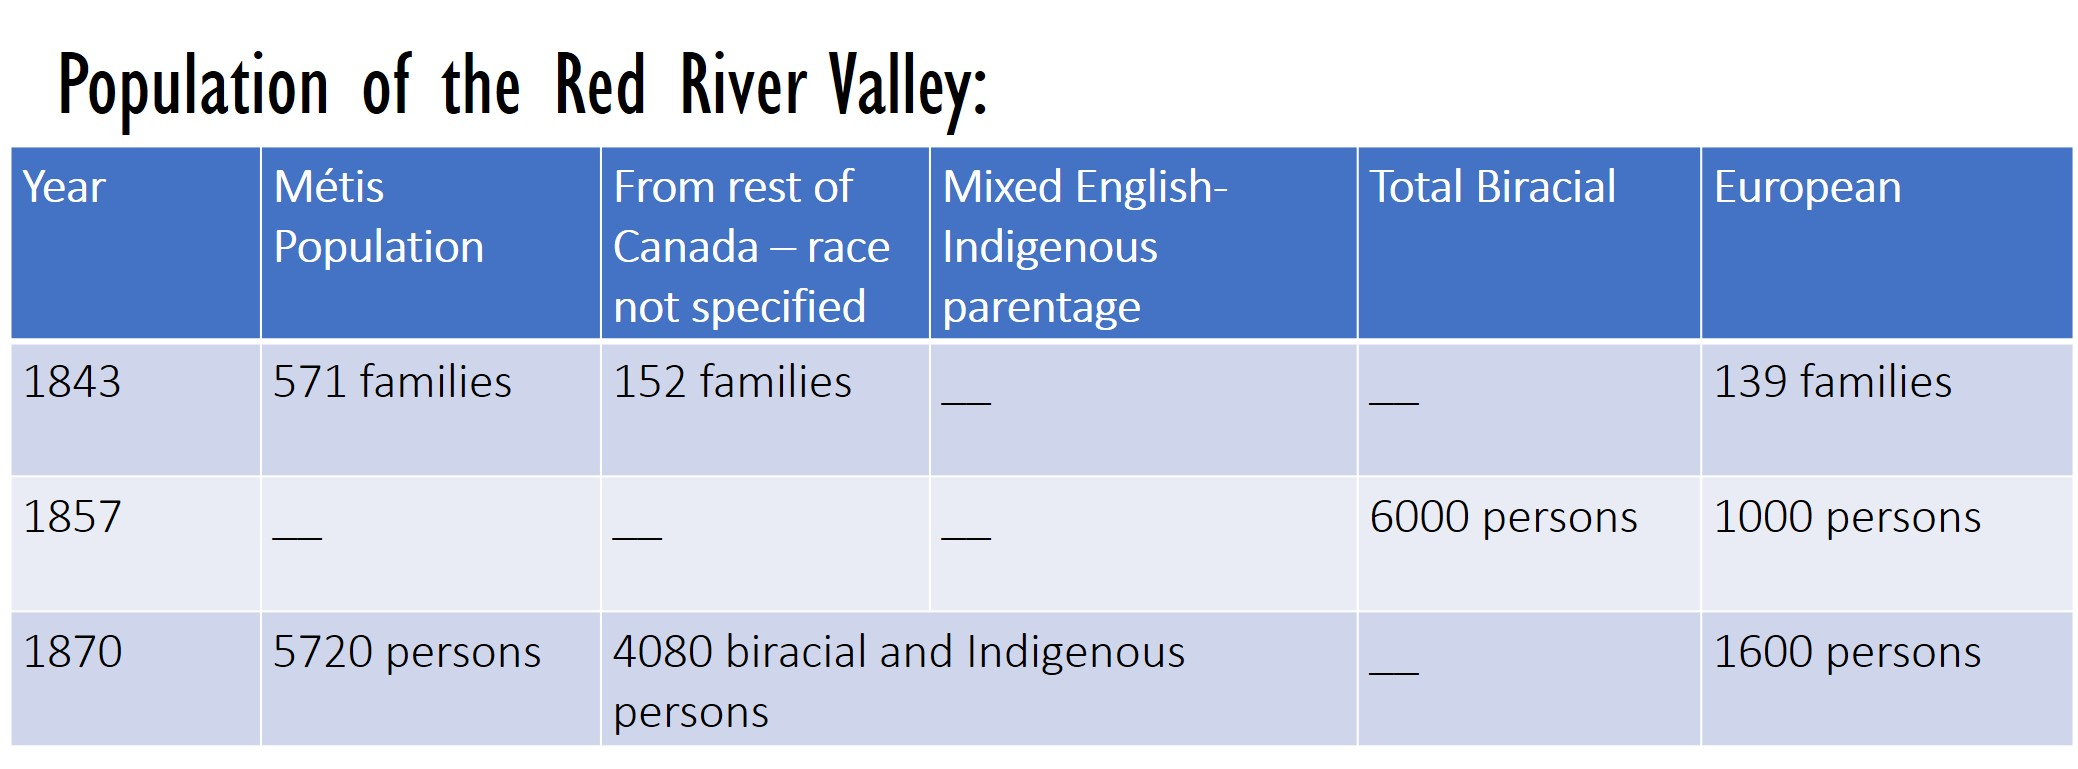 Population of the Red River Valley: